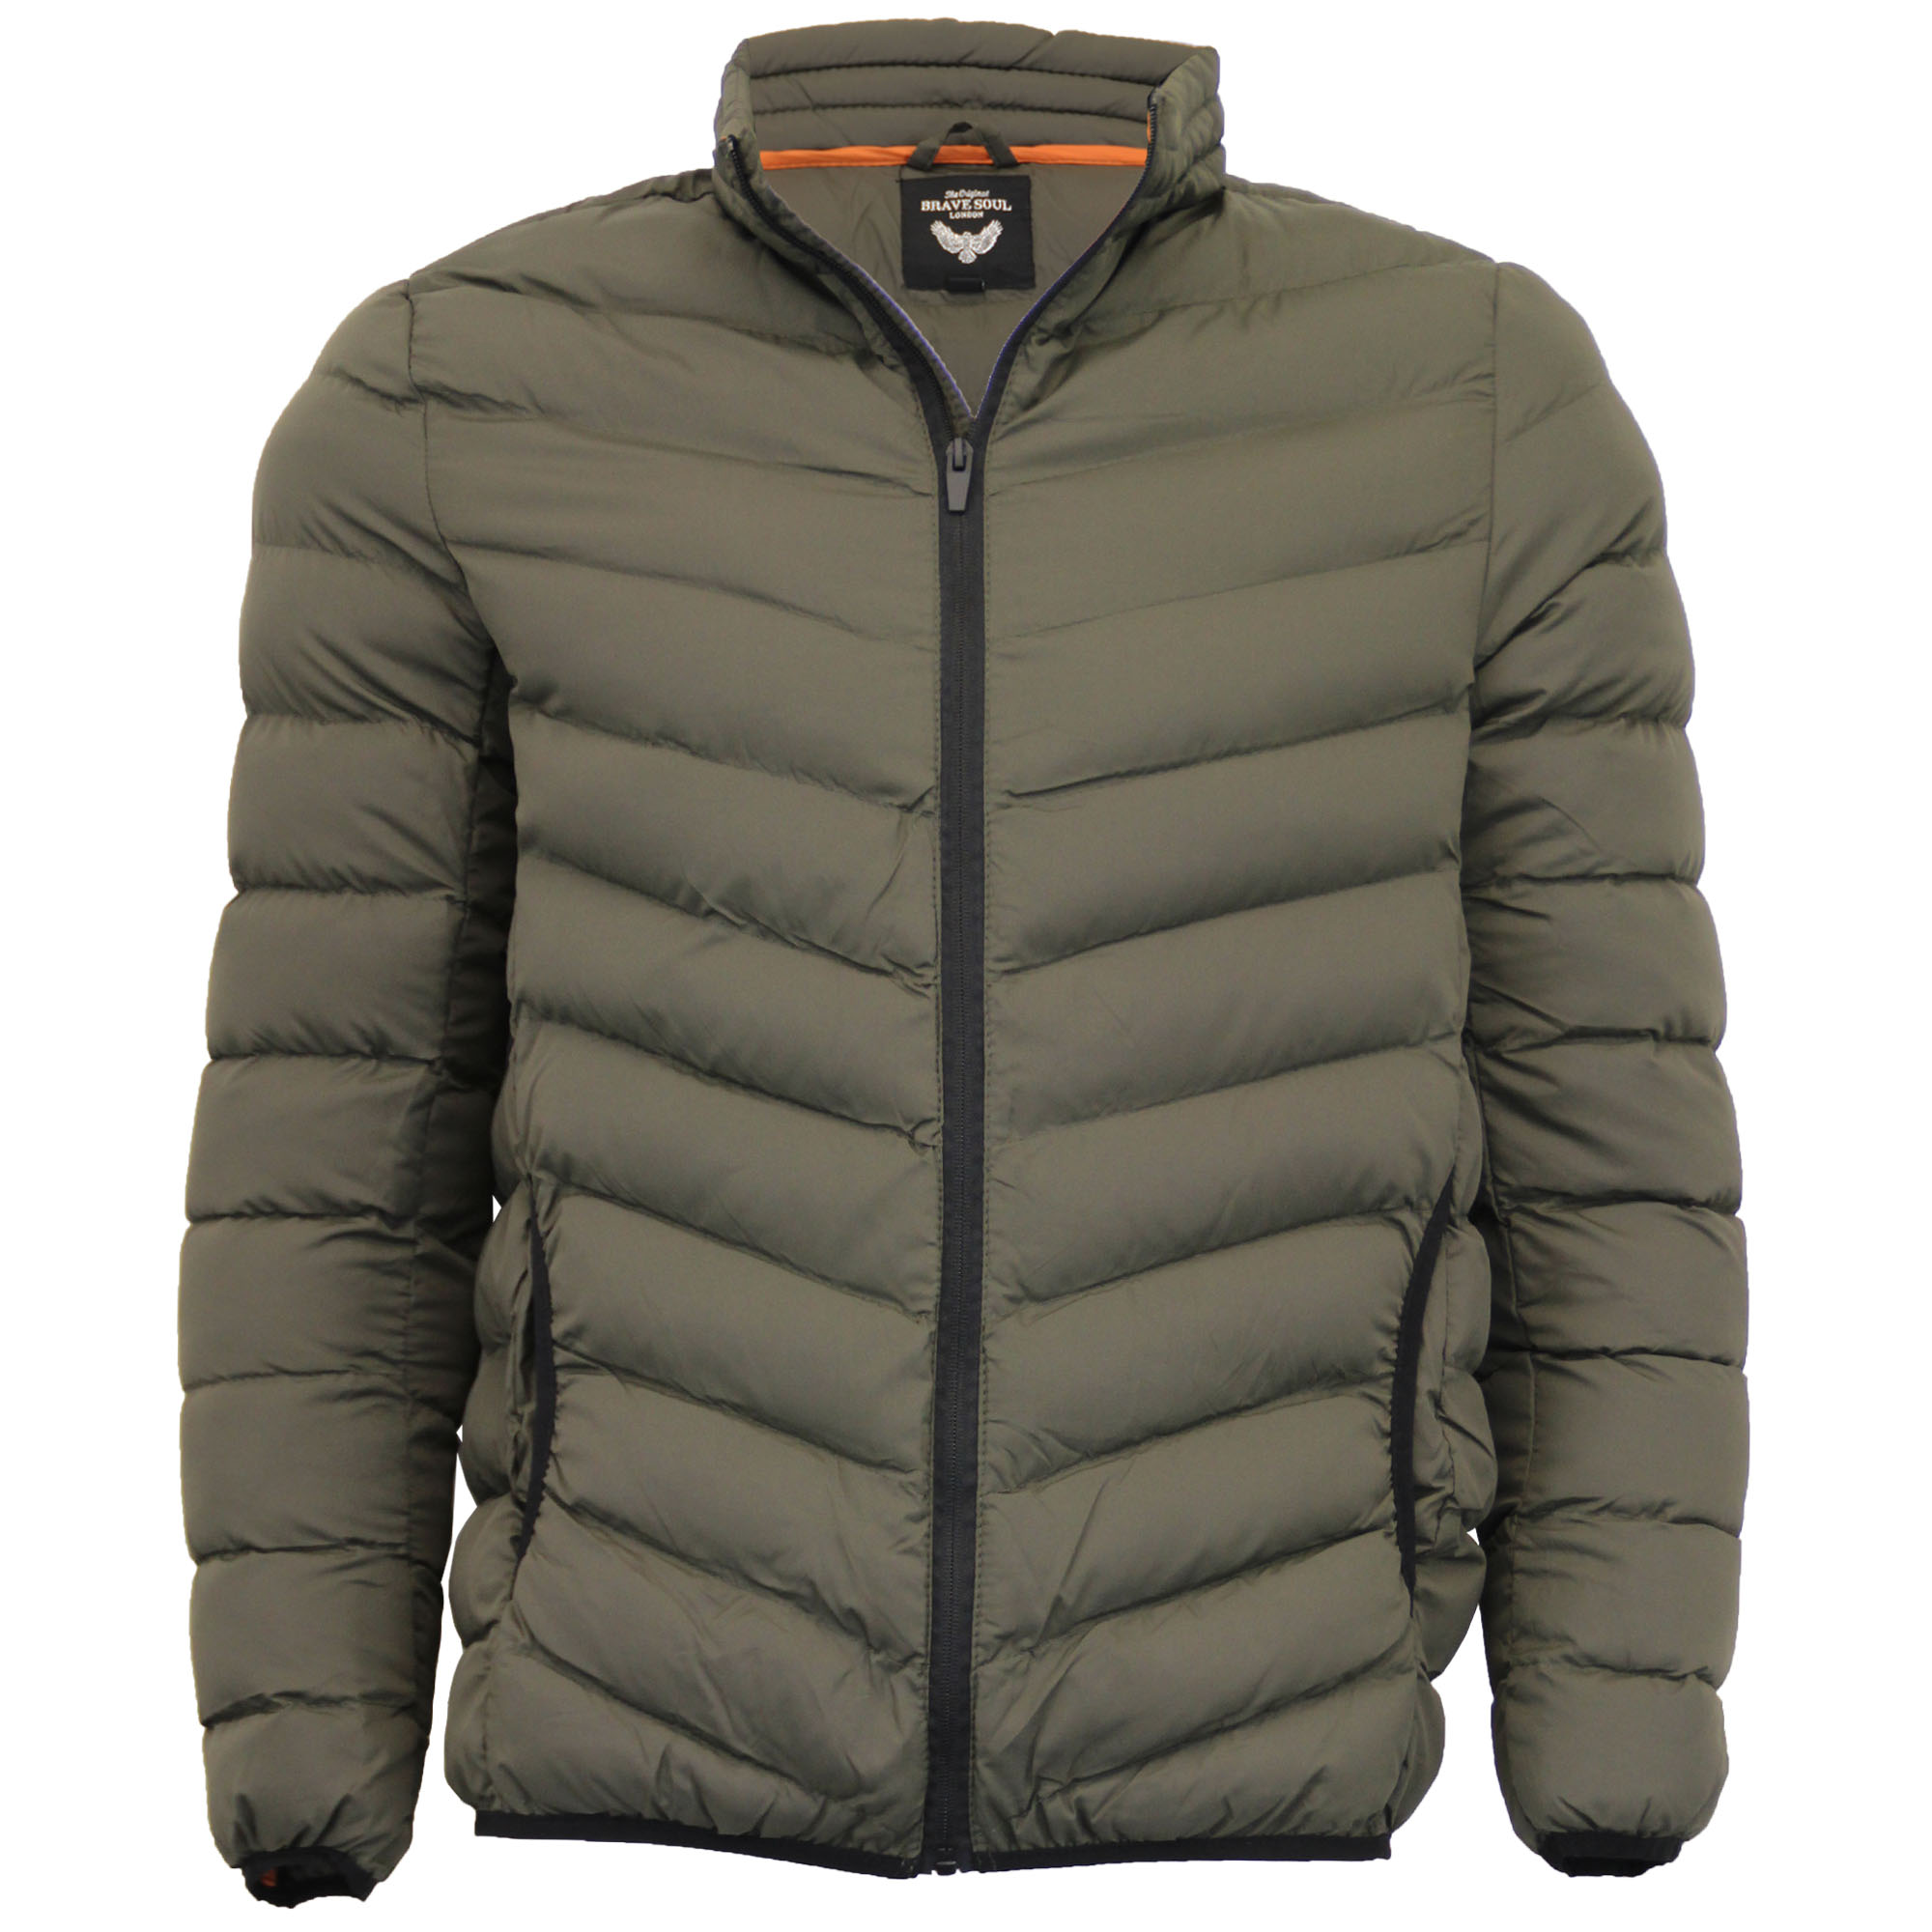 Mens Padded Jacket Brave Soul Quilted Bubble Coat Funnel Neck ... : brave soul quilted jacket - Adamdwight.com